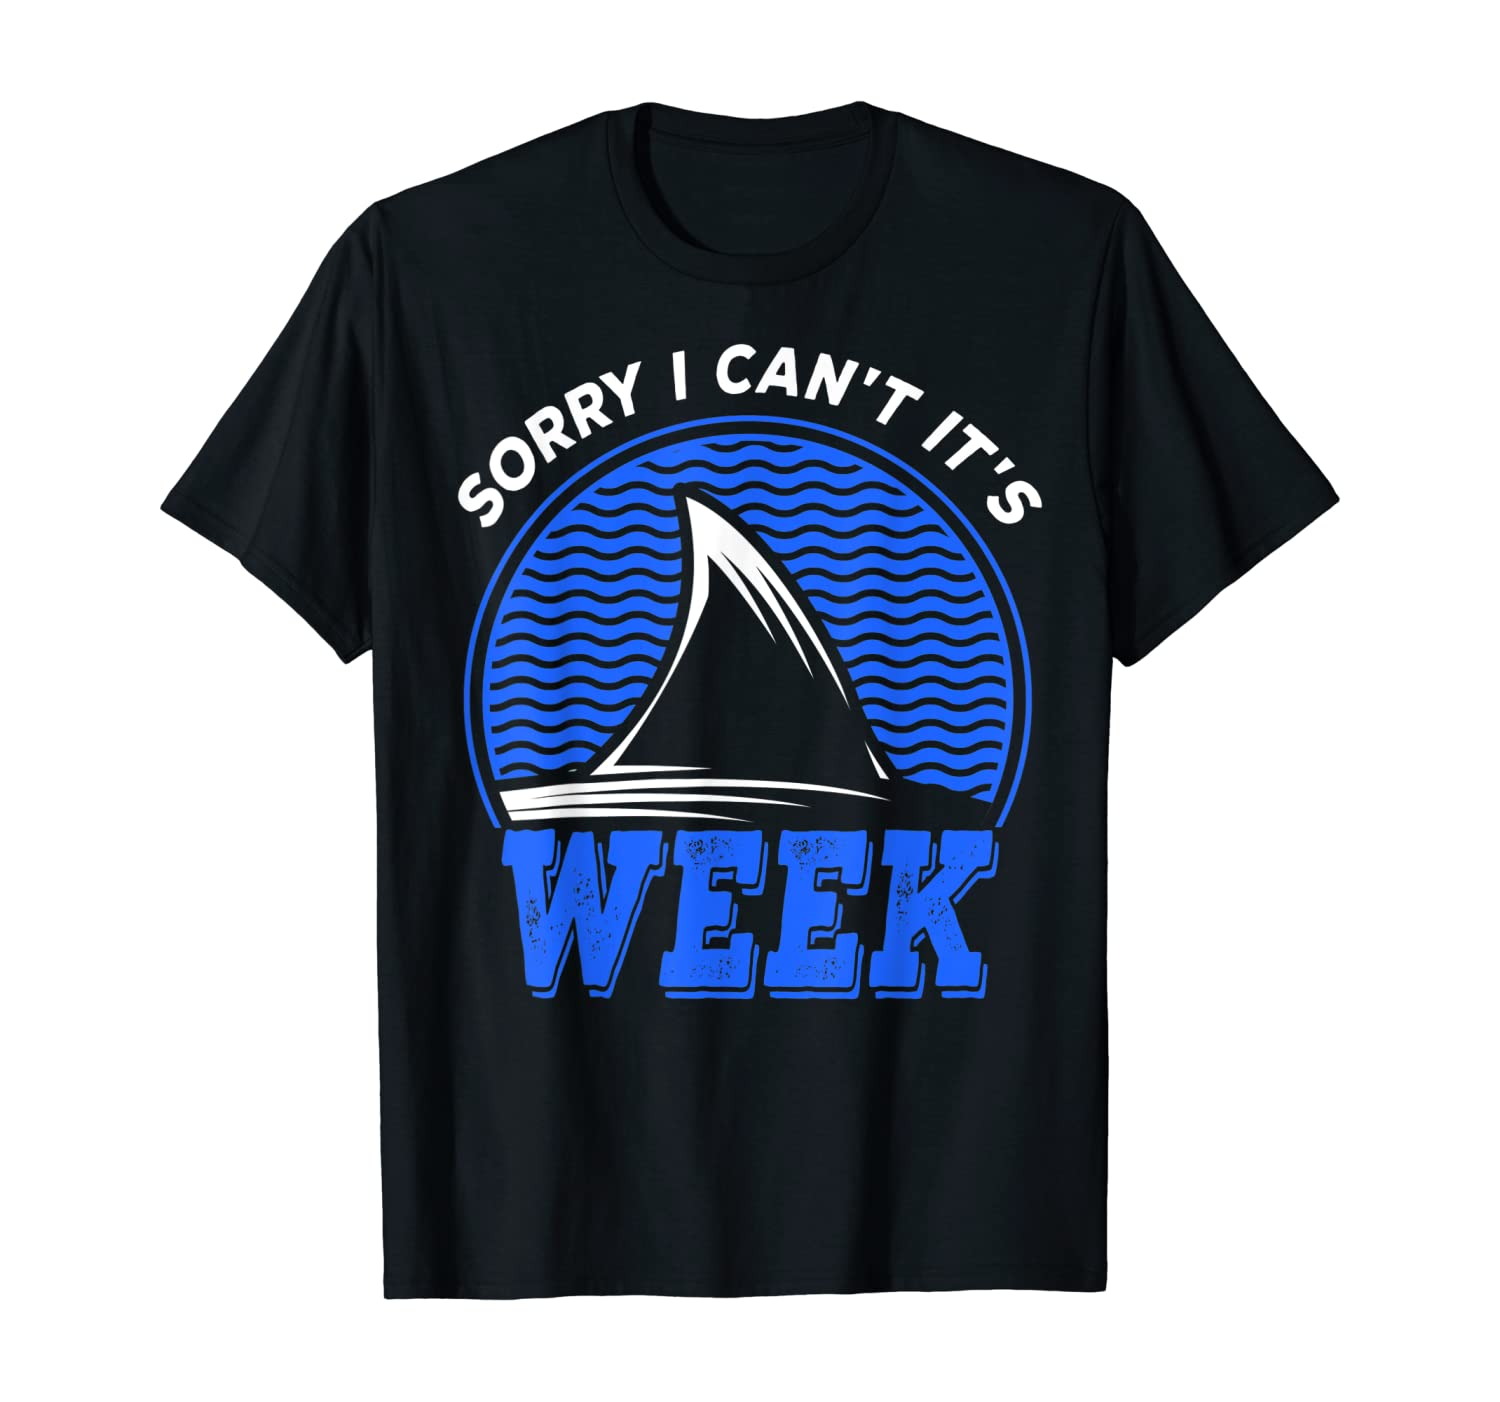 Sorry i can't it's Week, Funny Shark Lover Vintage Gift T-Shirt